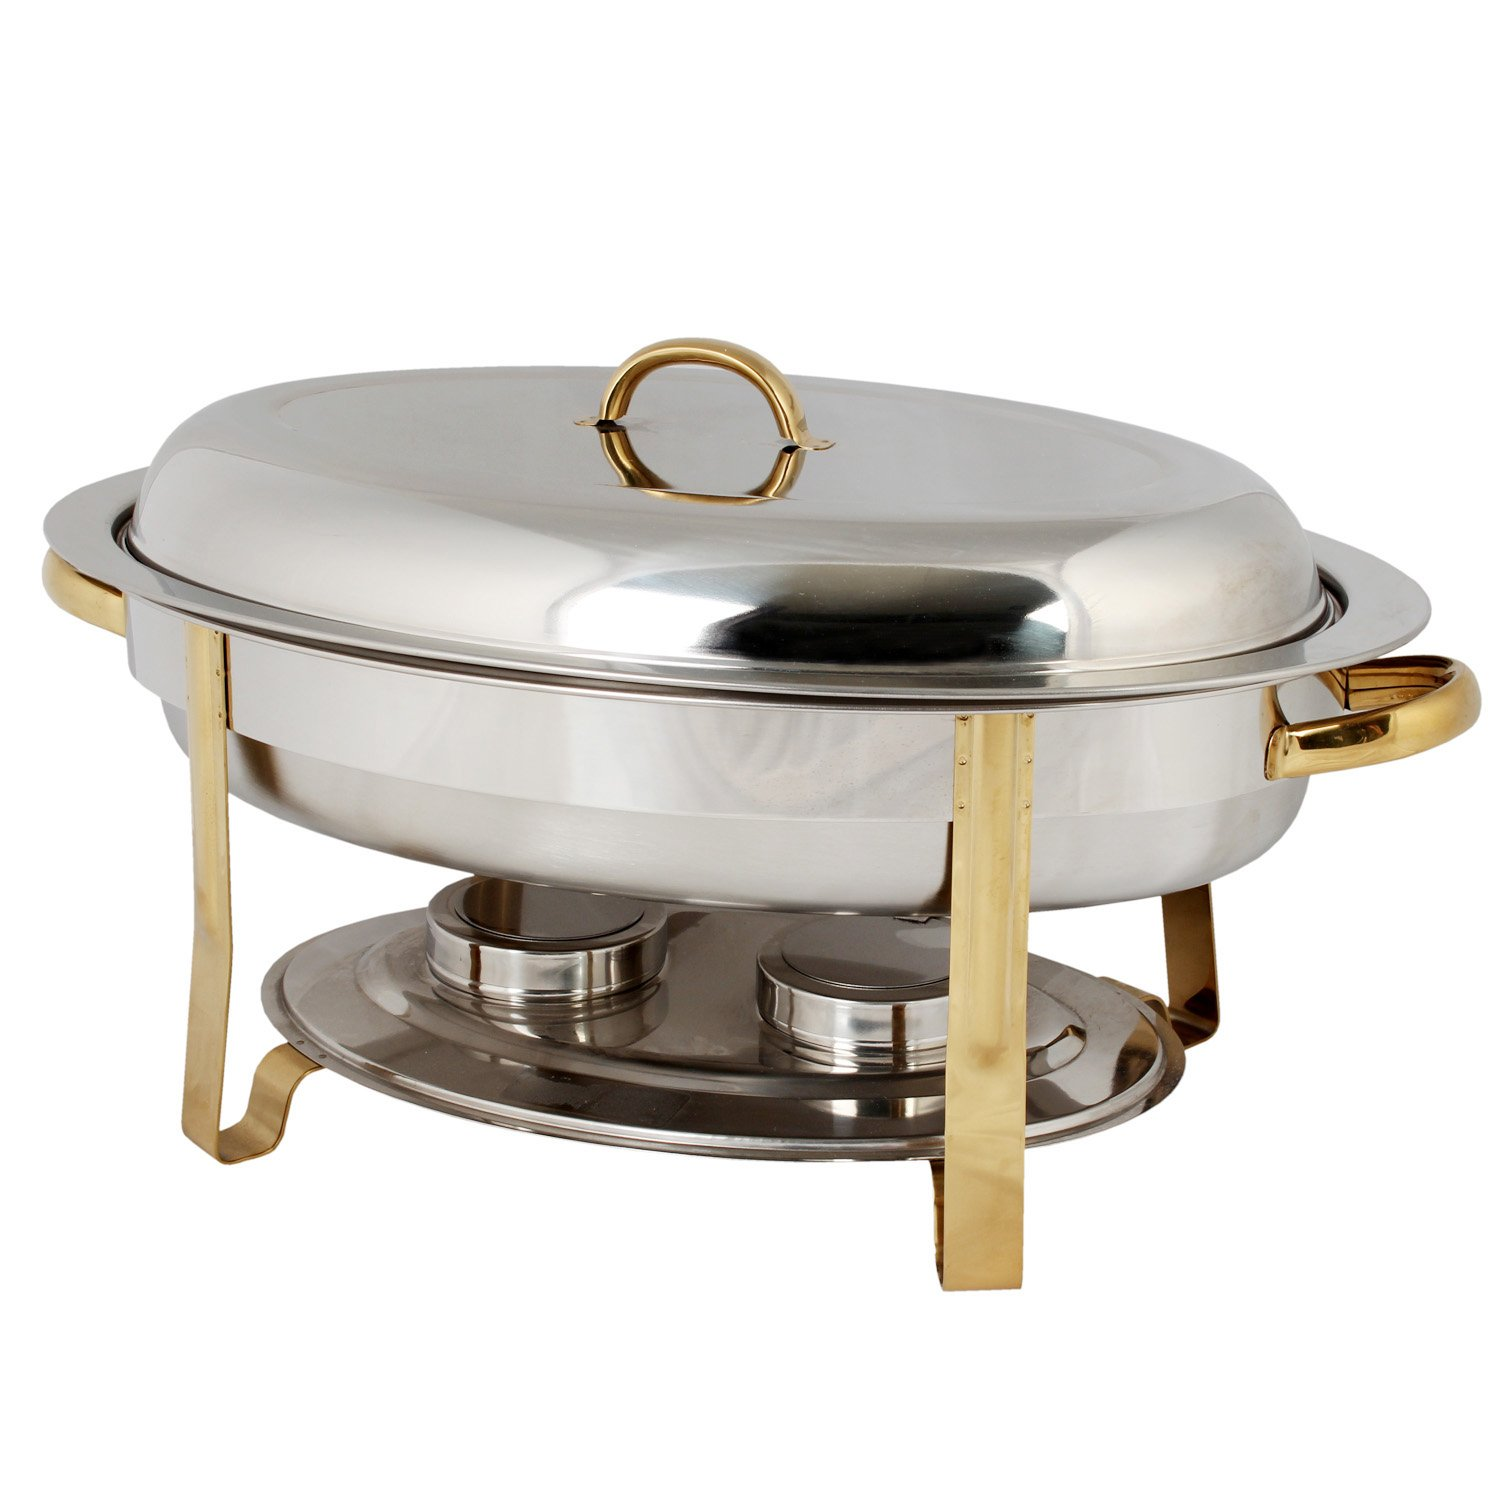 Excellante Stainless Steel 6-Quart Gold Accented Oval Chafer Thunder Group SLRCF0836GH